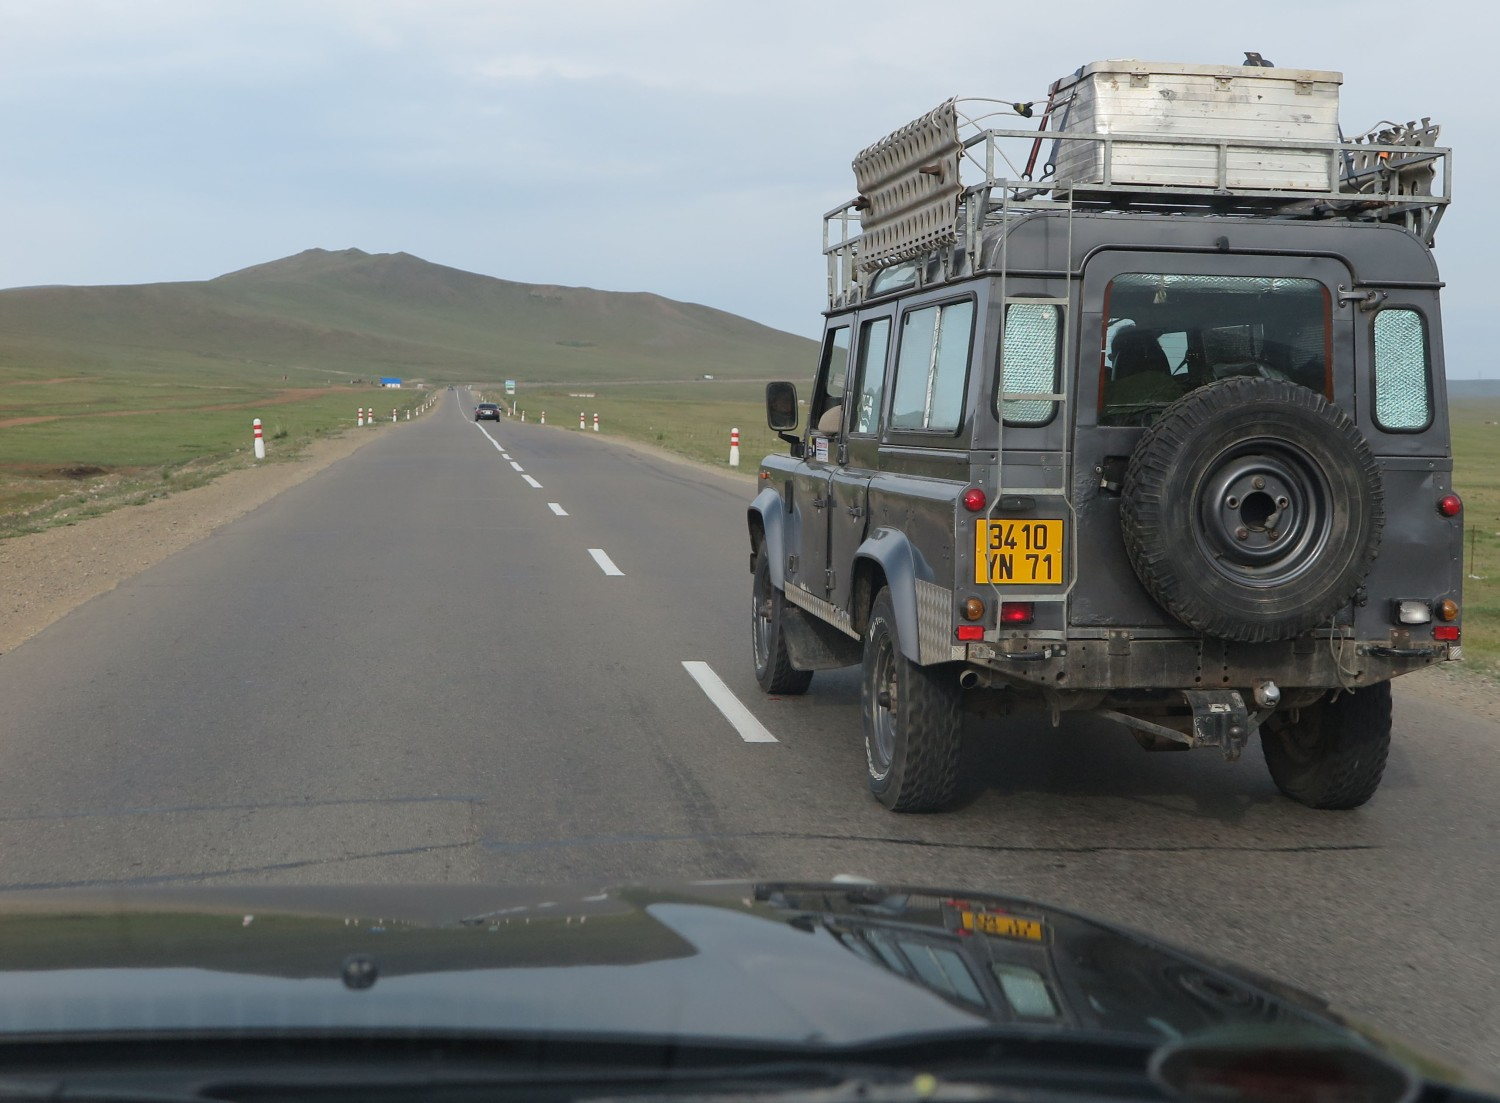 Mongolia-On-The-Road-Land-Rover